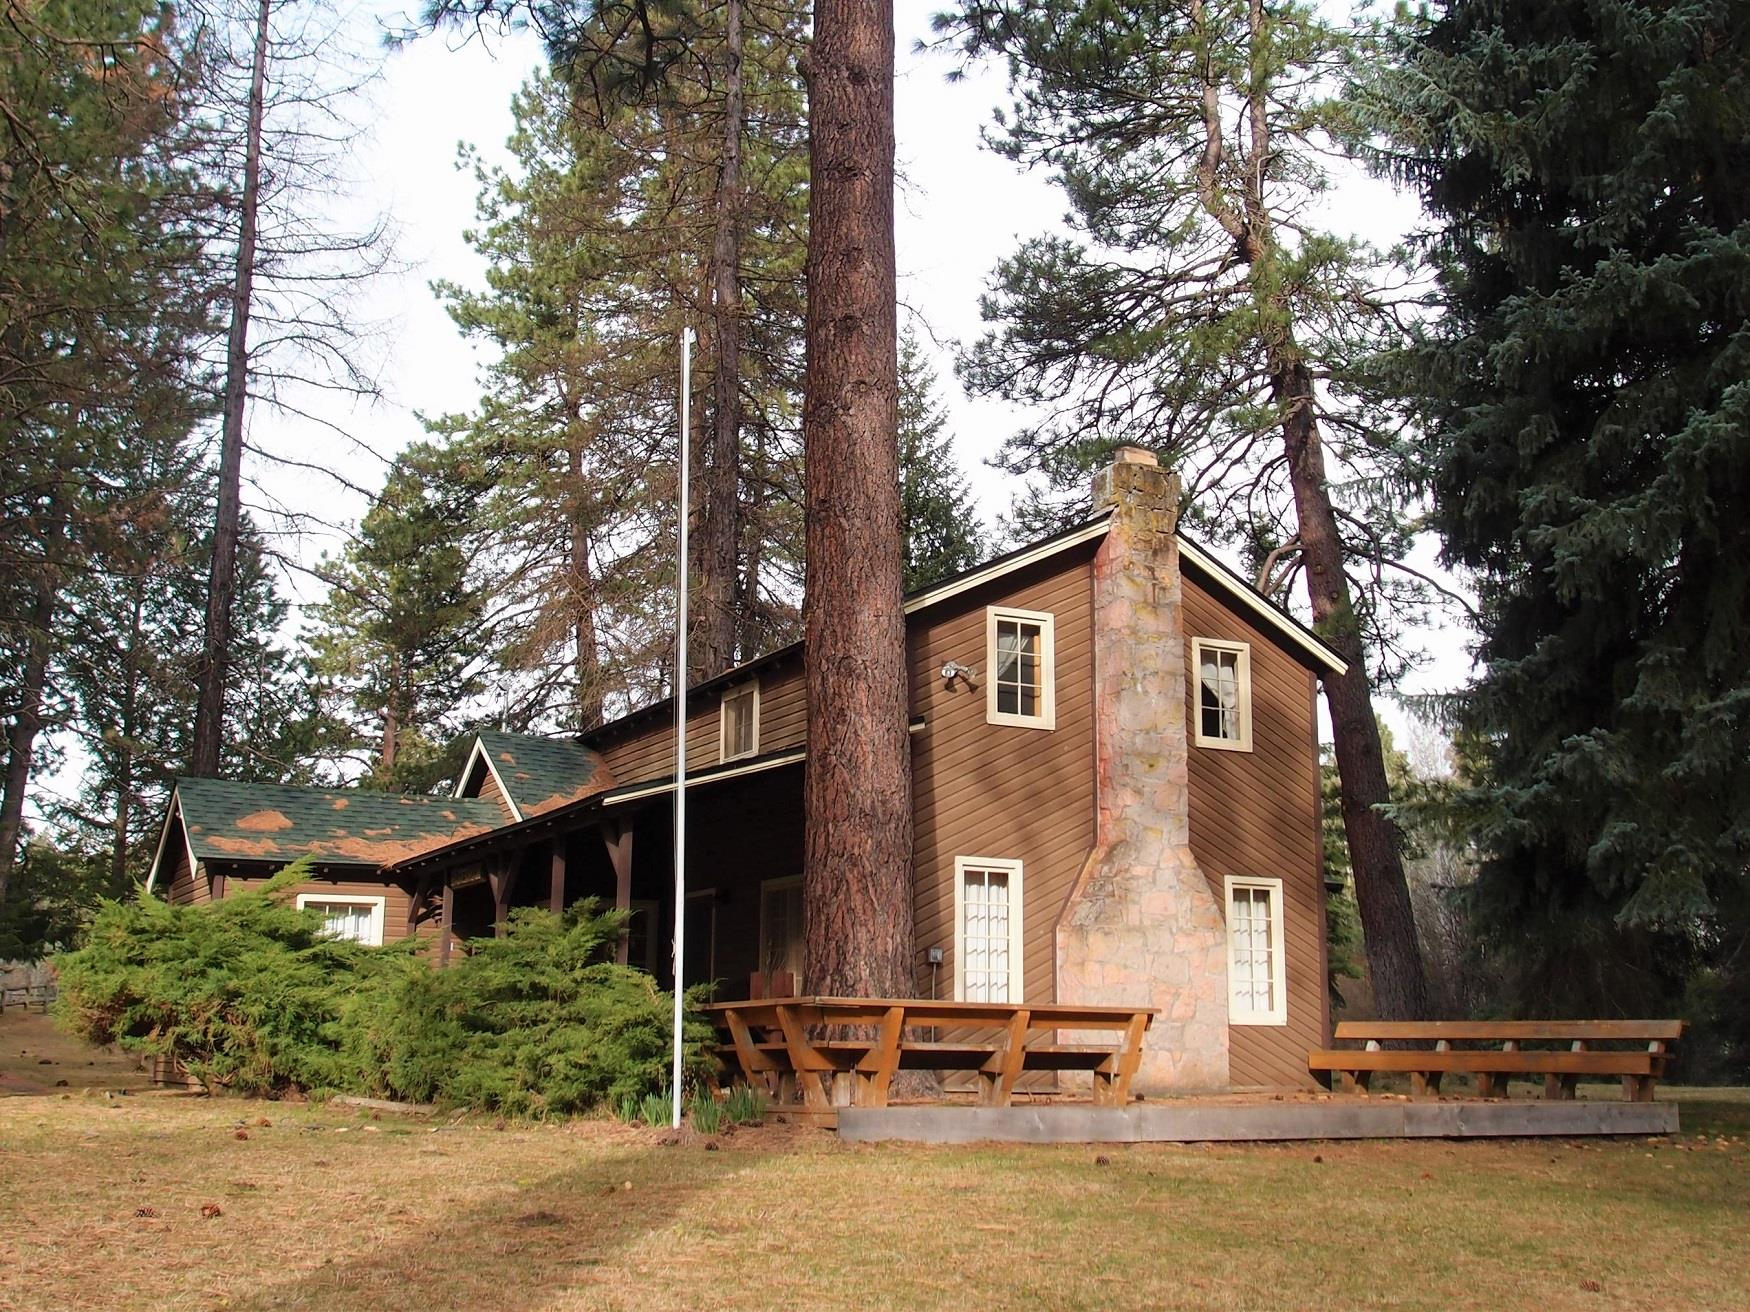 Exterior shot of Haberman Cabin at Cold Springs Resort, on the Metolius River in Camp Sherman, Oregon